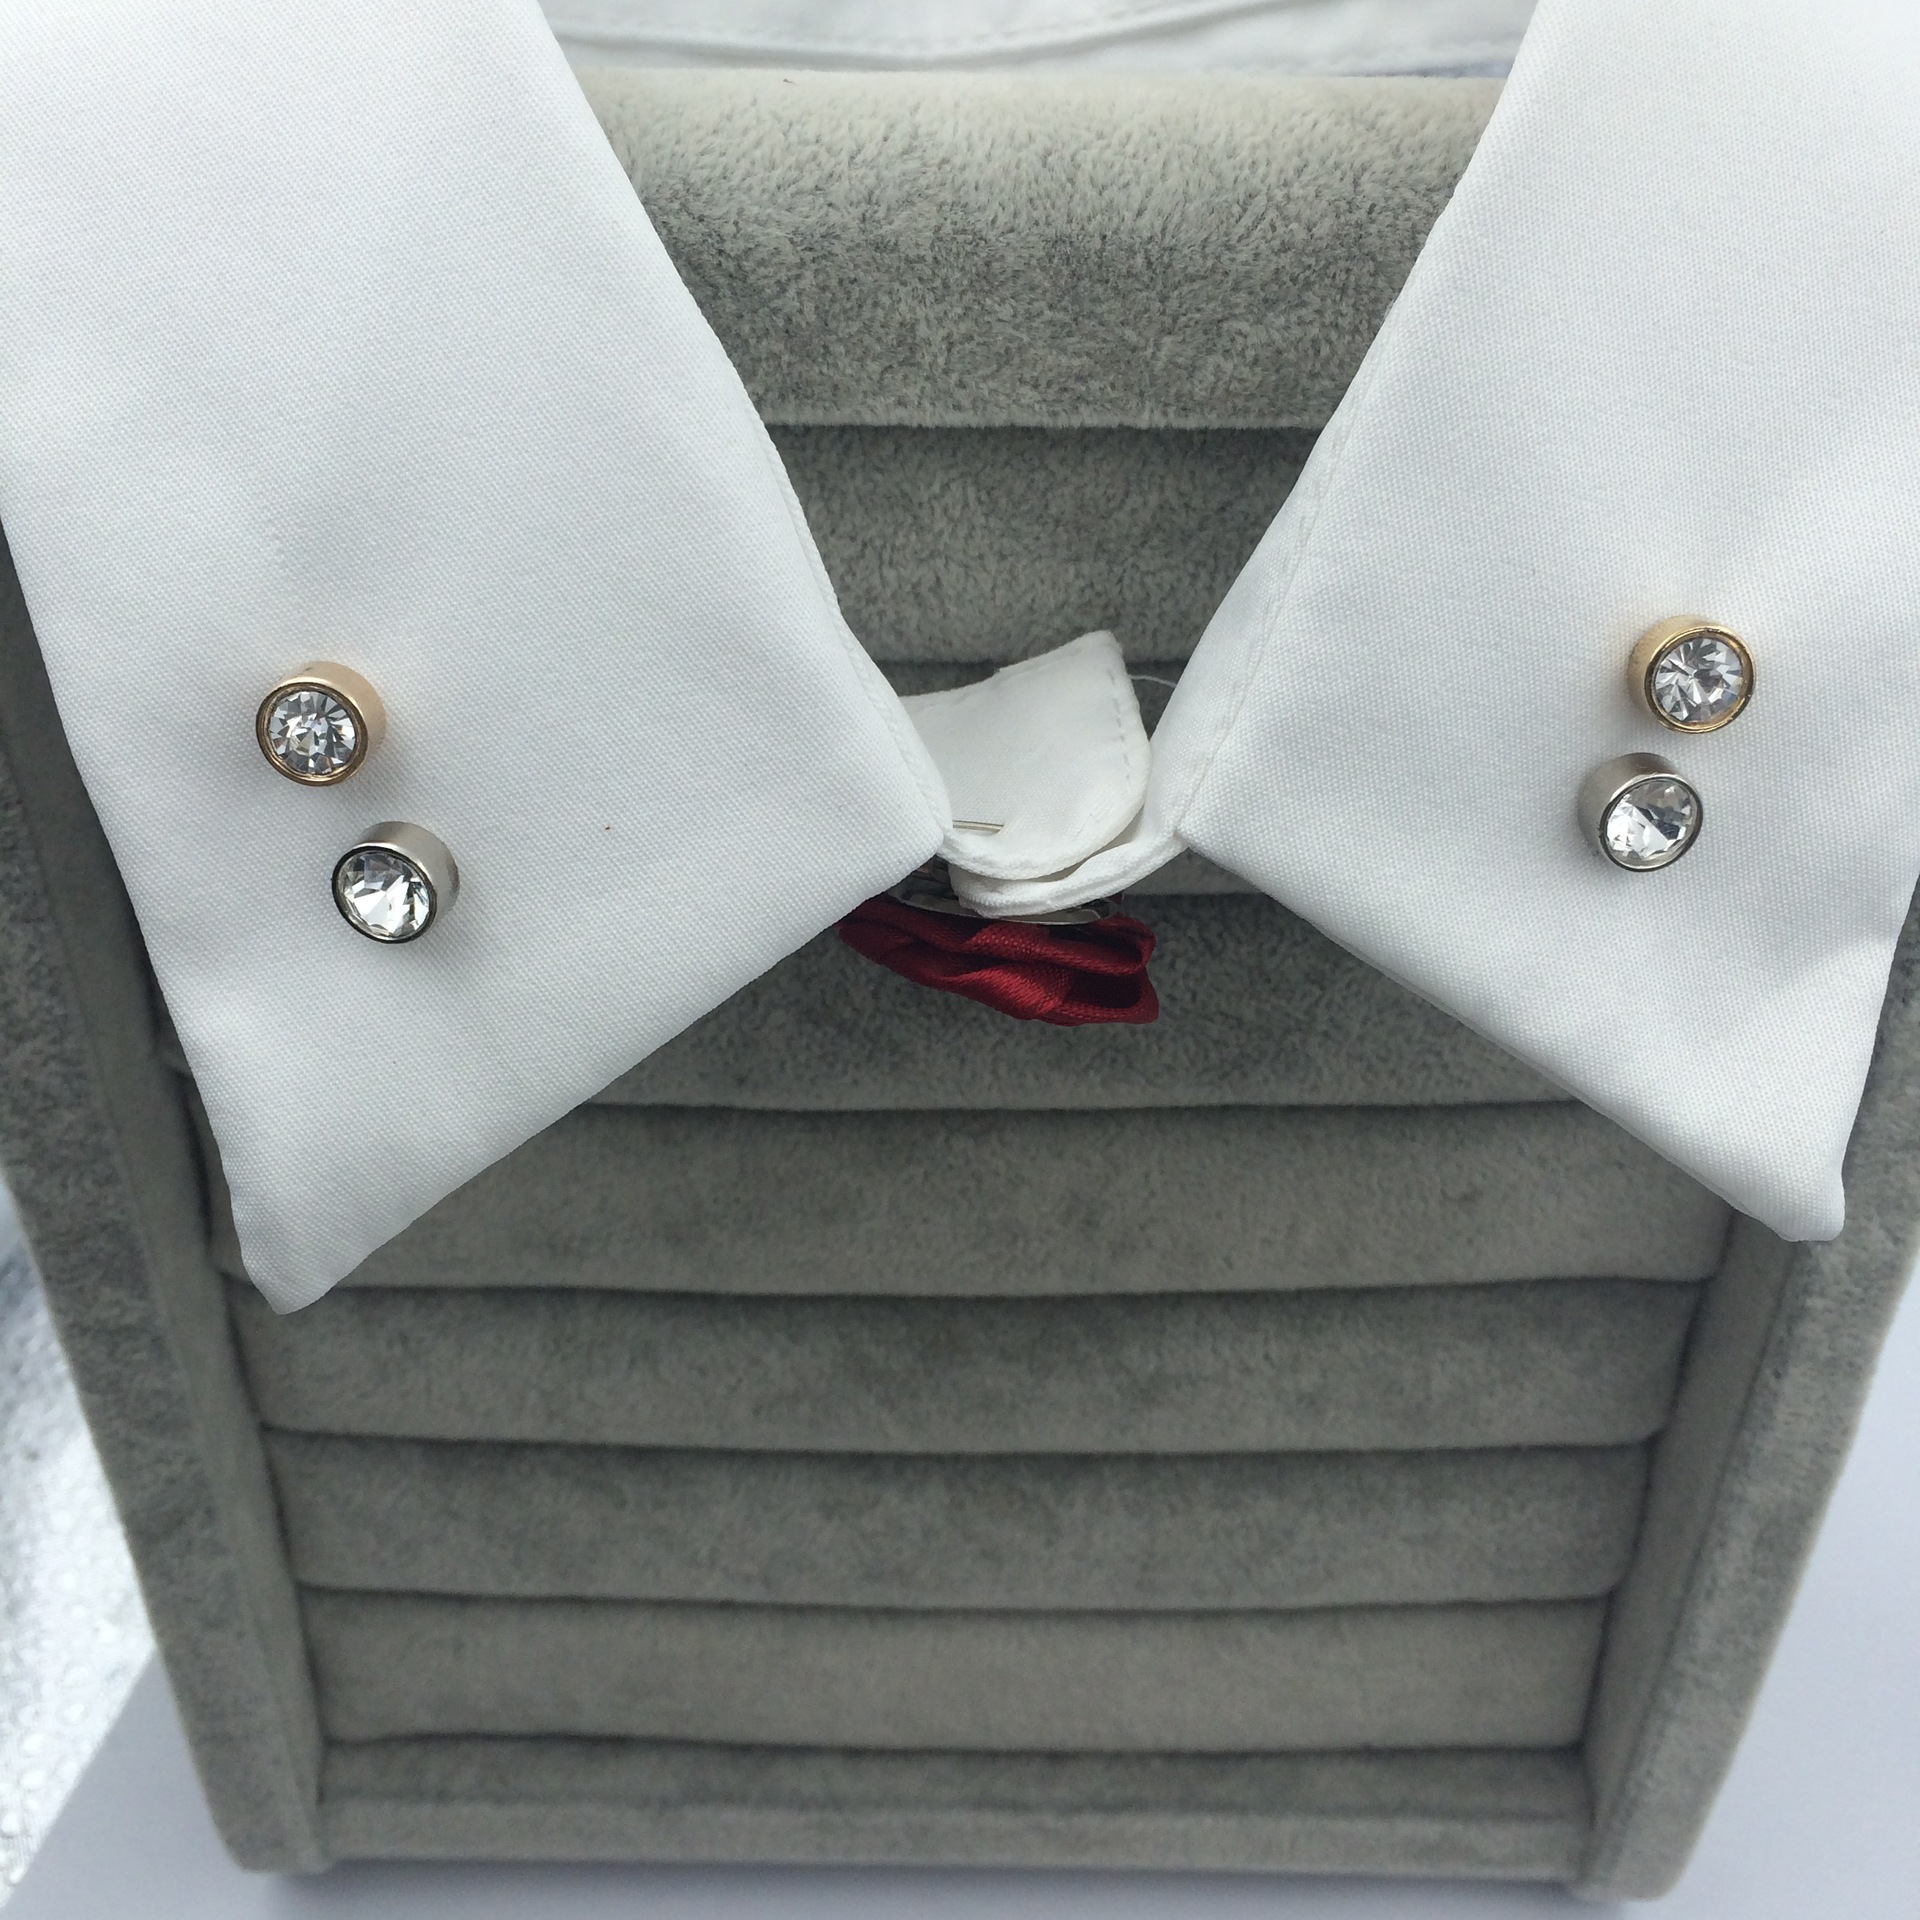 10 pieces/lot Suit shirt collar Brooch Paint Enamel Brooches Men and Women Suits Dress Hat Collar Brooch Pins Scarf Buckle Gift